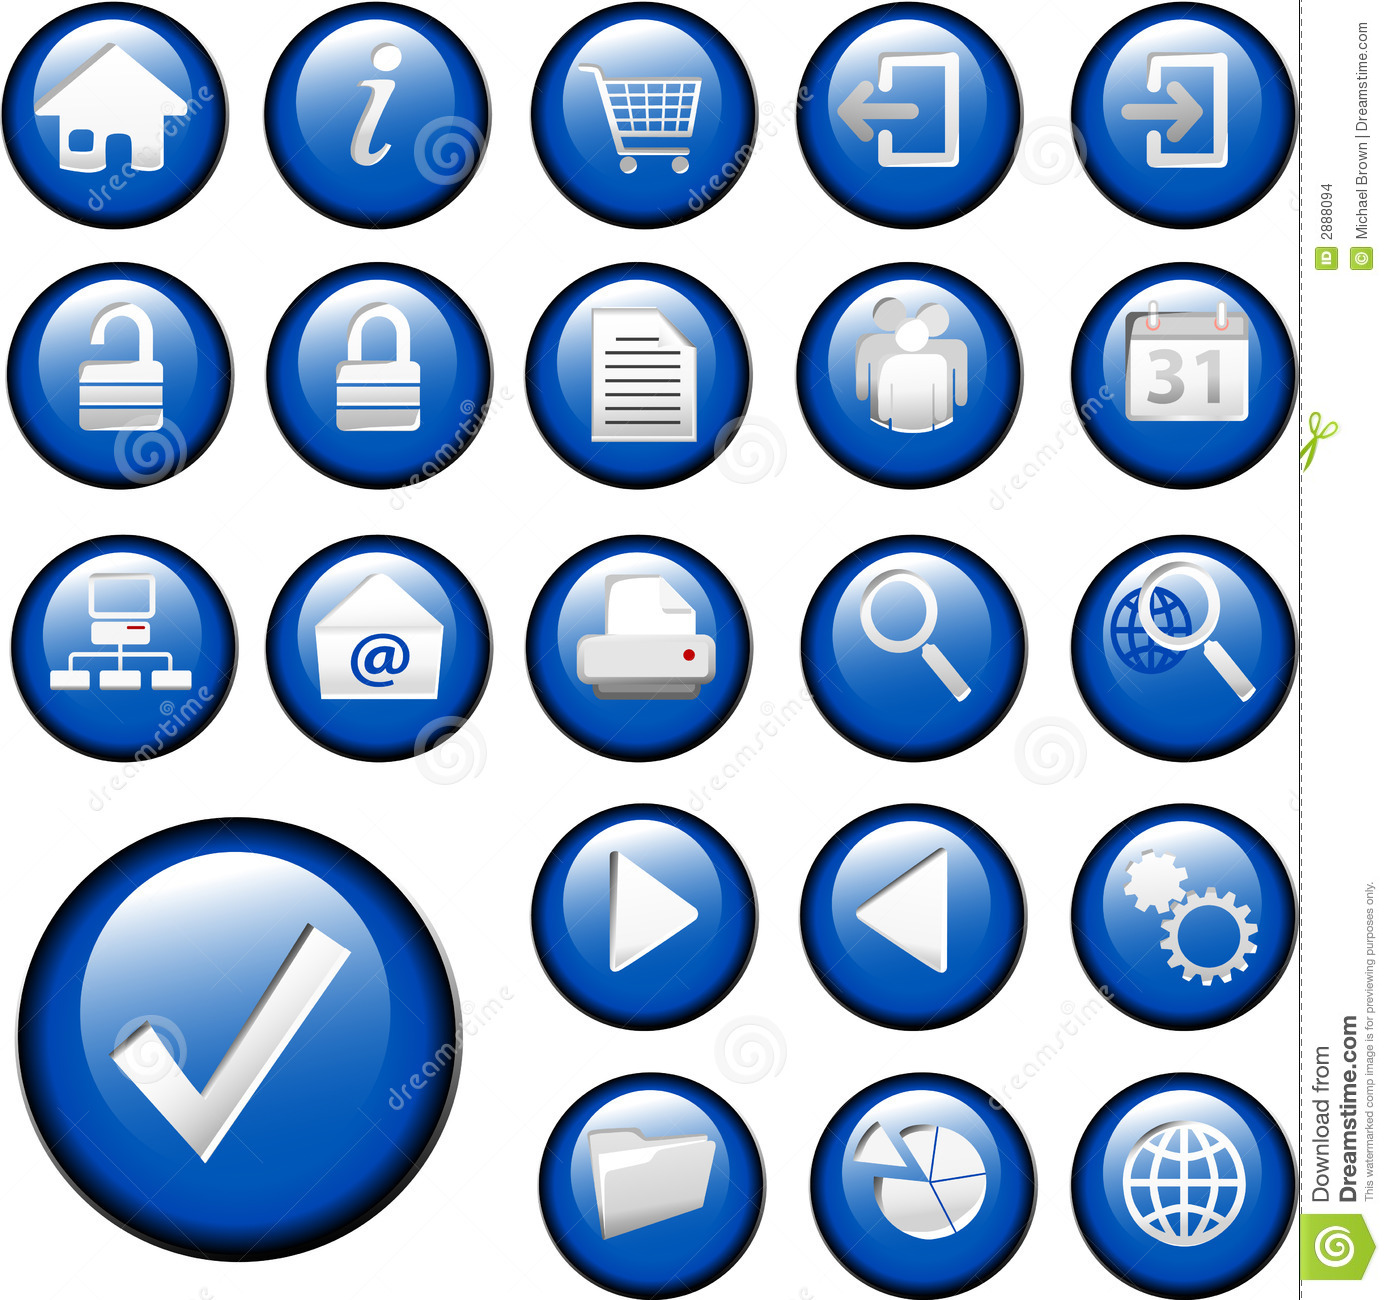 Blue Inset Button Icons set collection